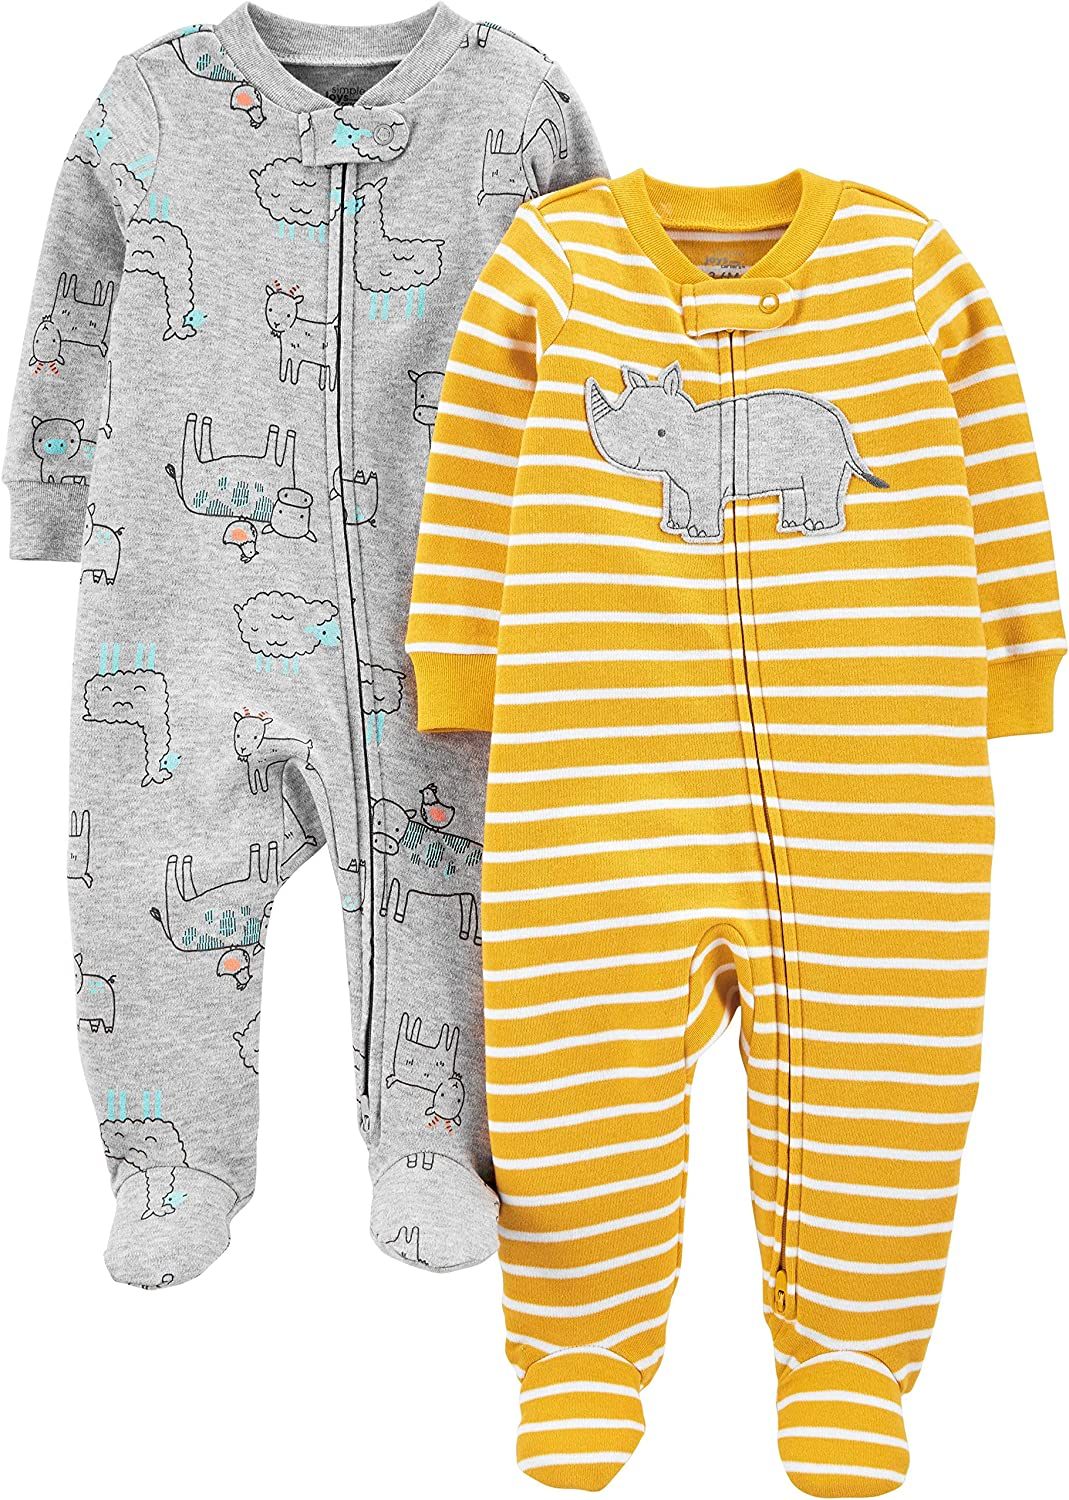 Simple Joys by Carters Confezione da 2 Zip A 2 Vie in Cotone per Dormire E Giocare Infant-And-Toddler-Sleepers Bambino